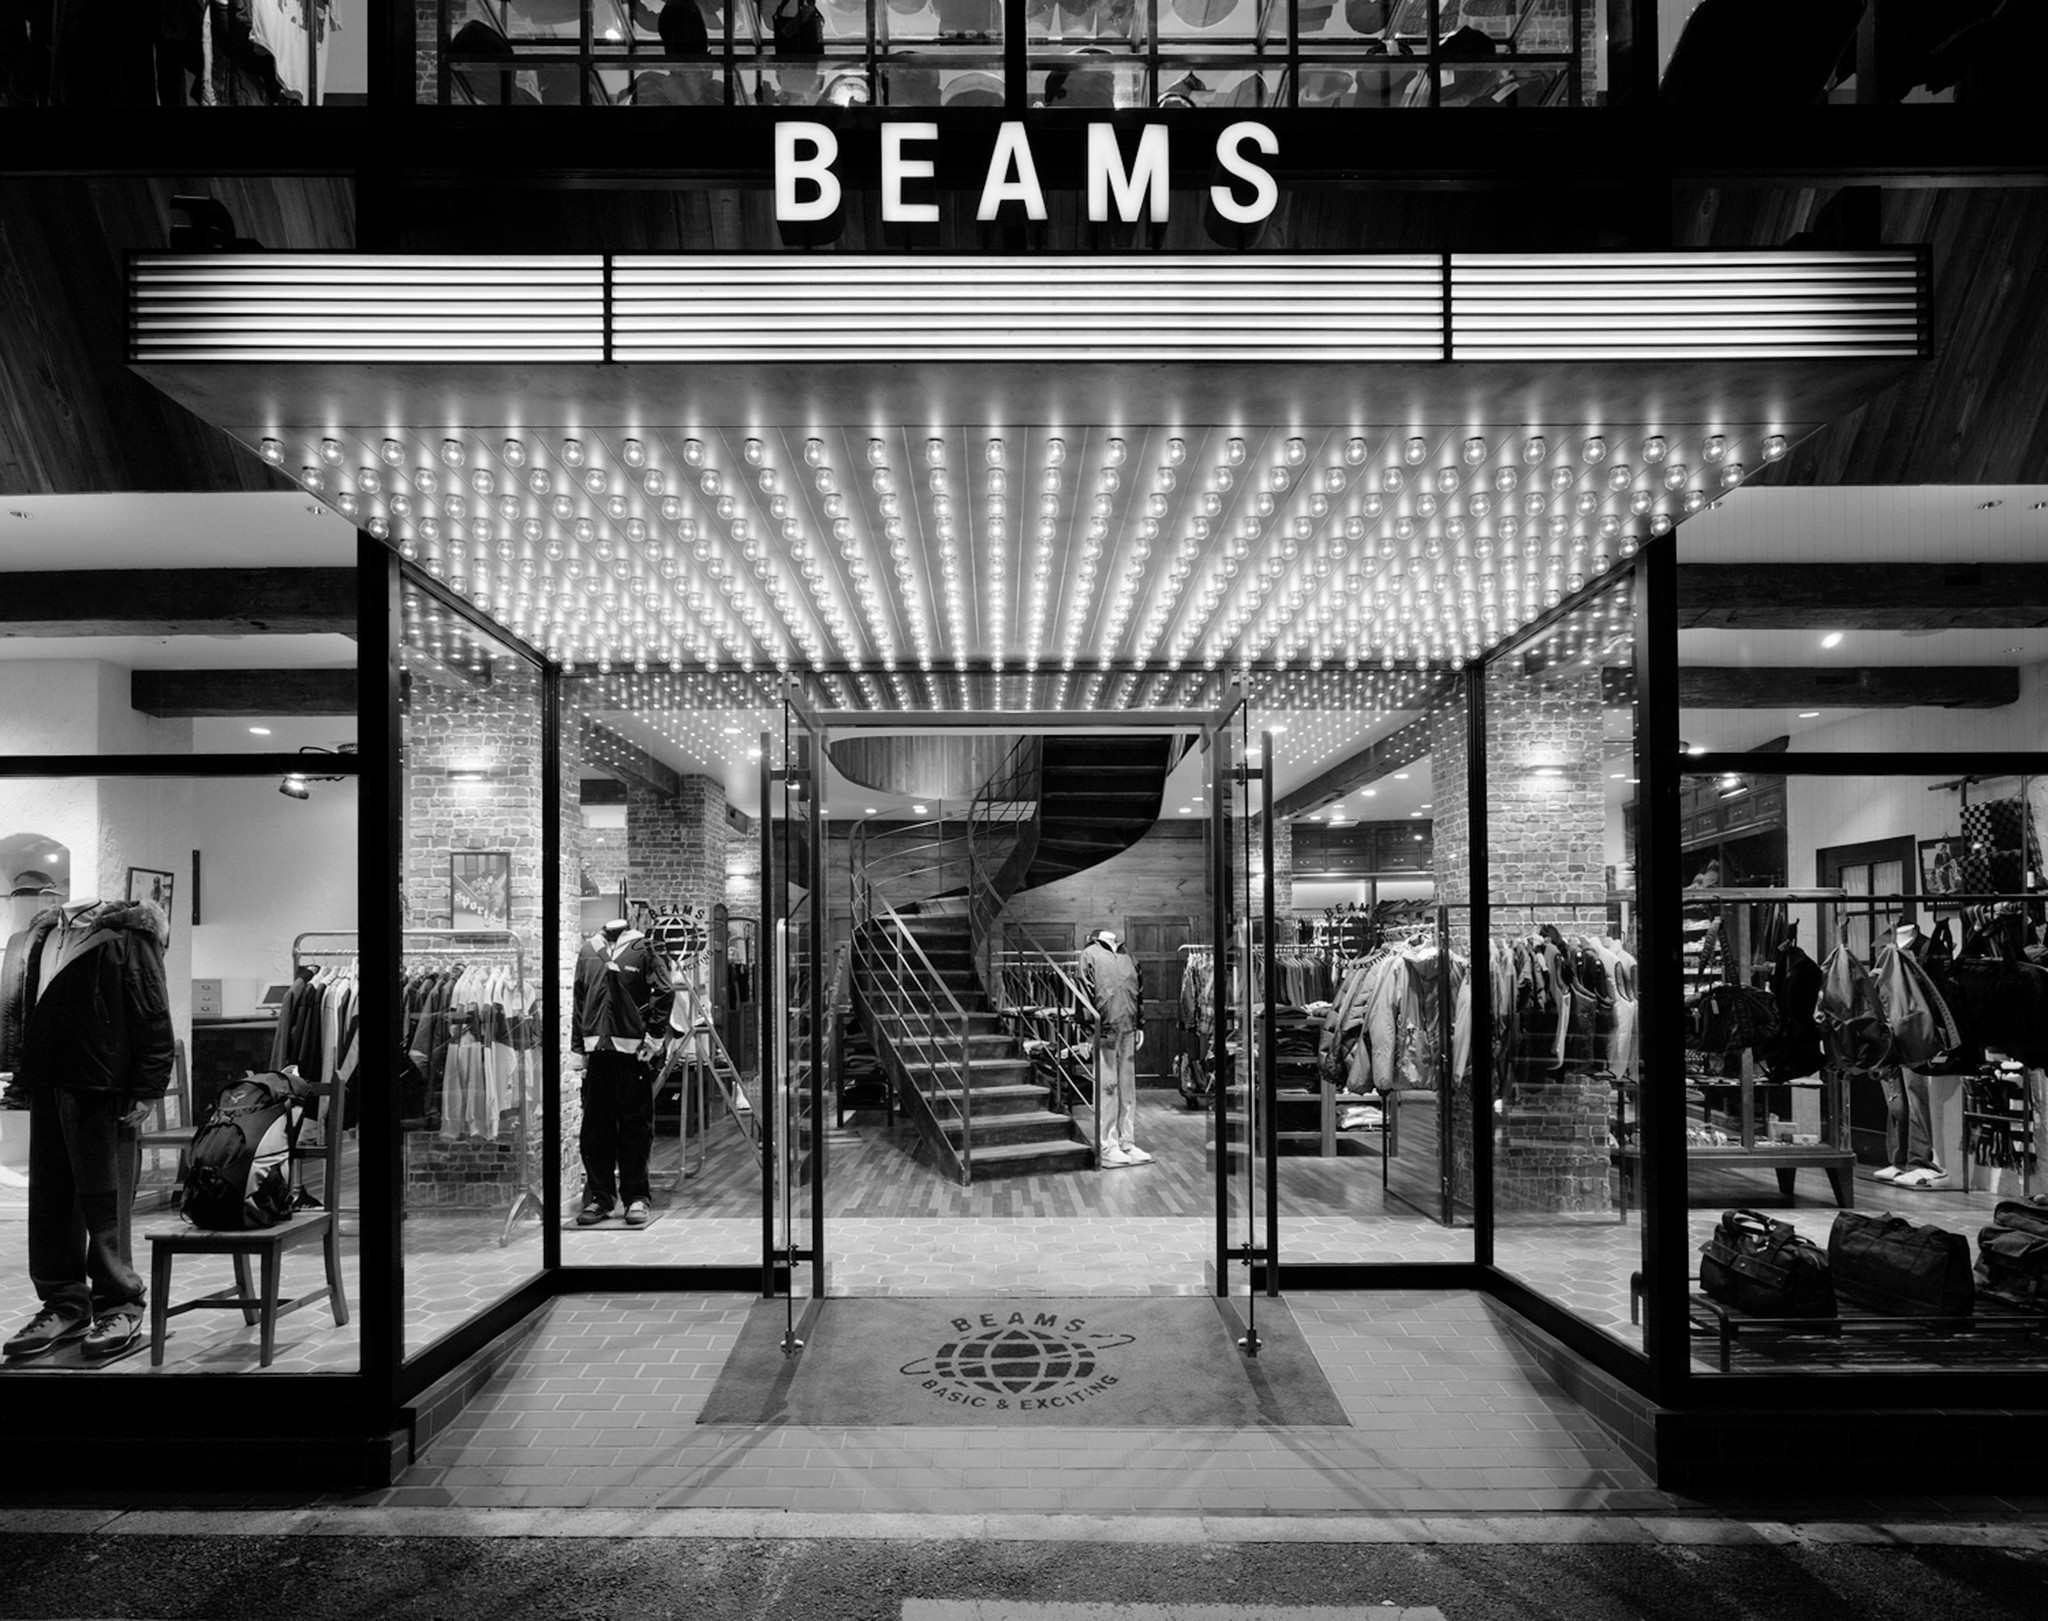 Influential japanese lifestyle and apparel brand beams has - Influential Japanese Lifestyle And Apparel Brand Beams Has 33